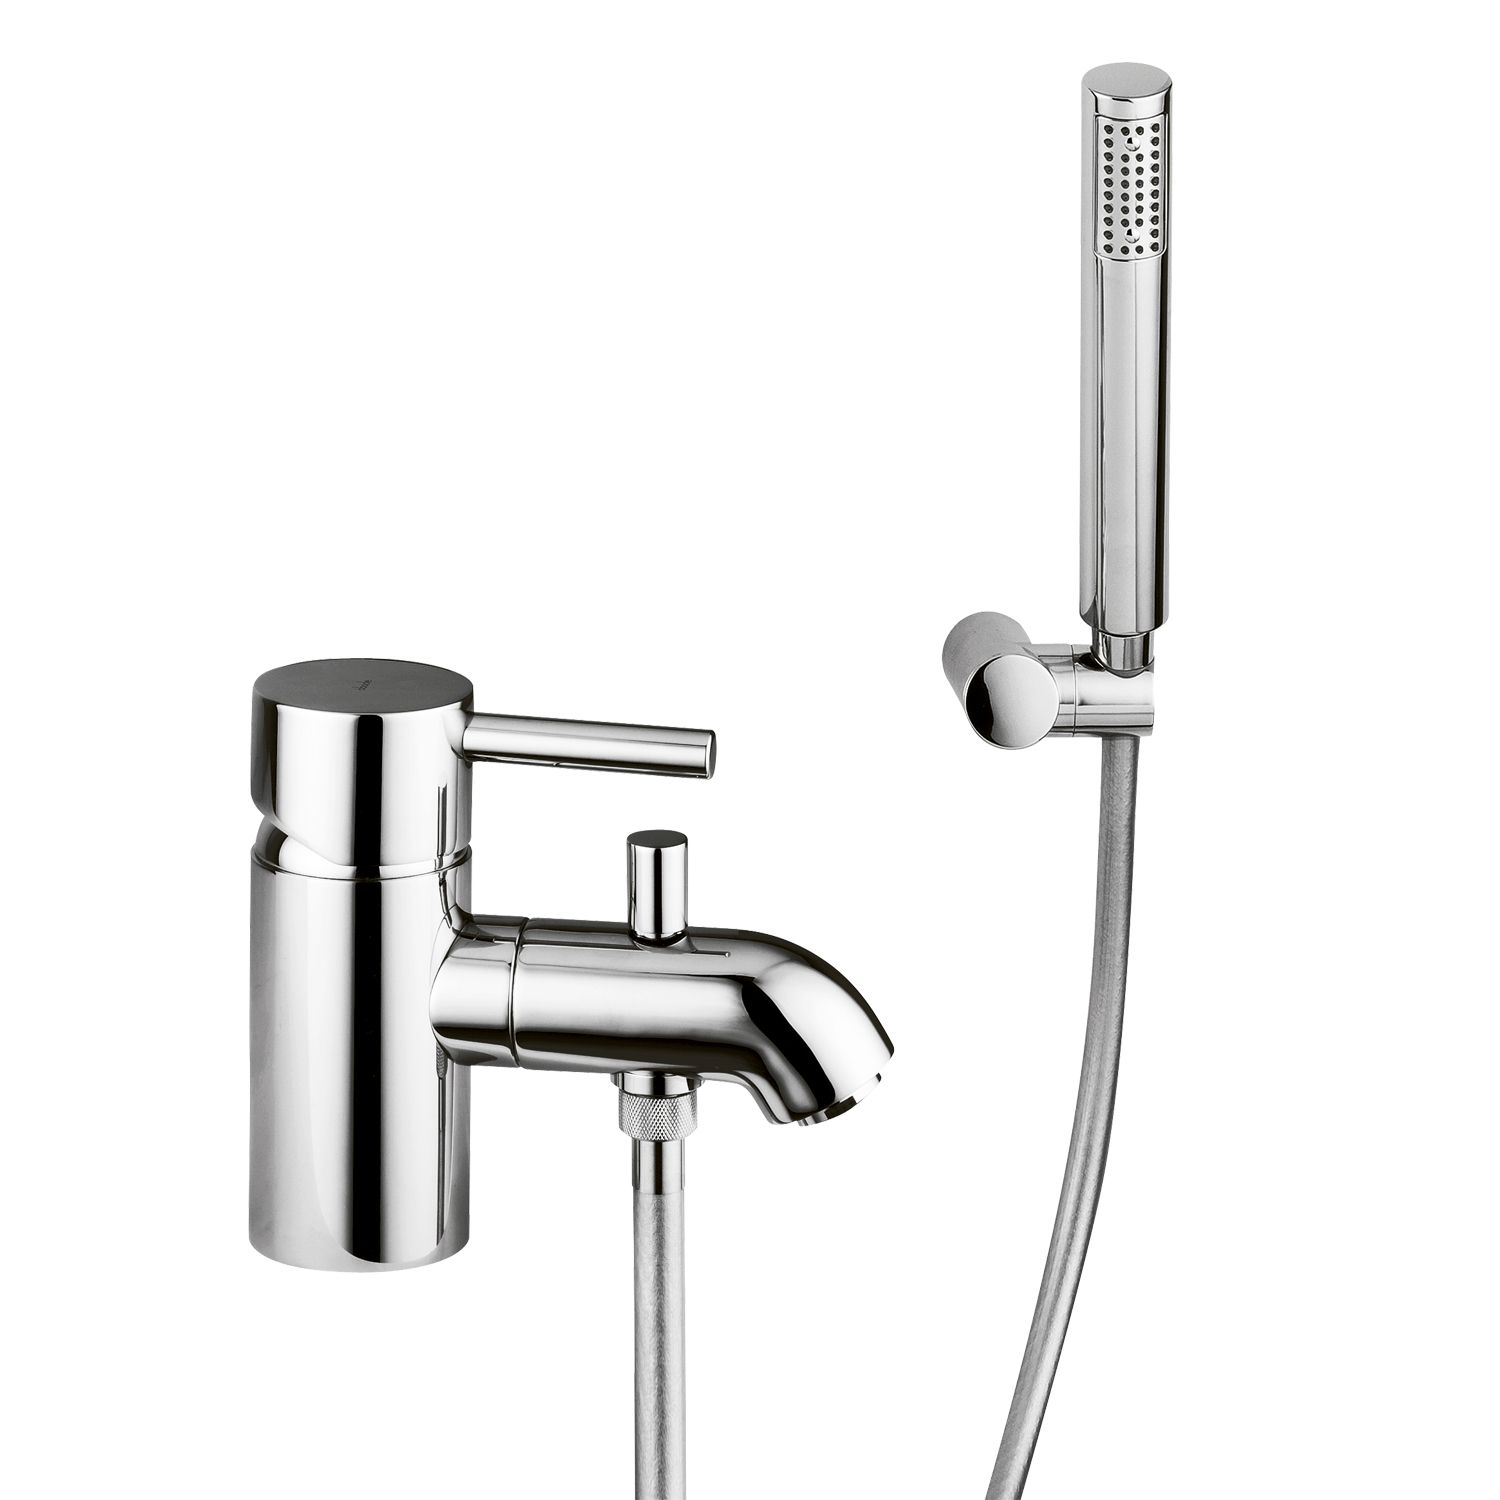 Bath Taps With Shower Diverter. chrome single lever shower mixer ...